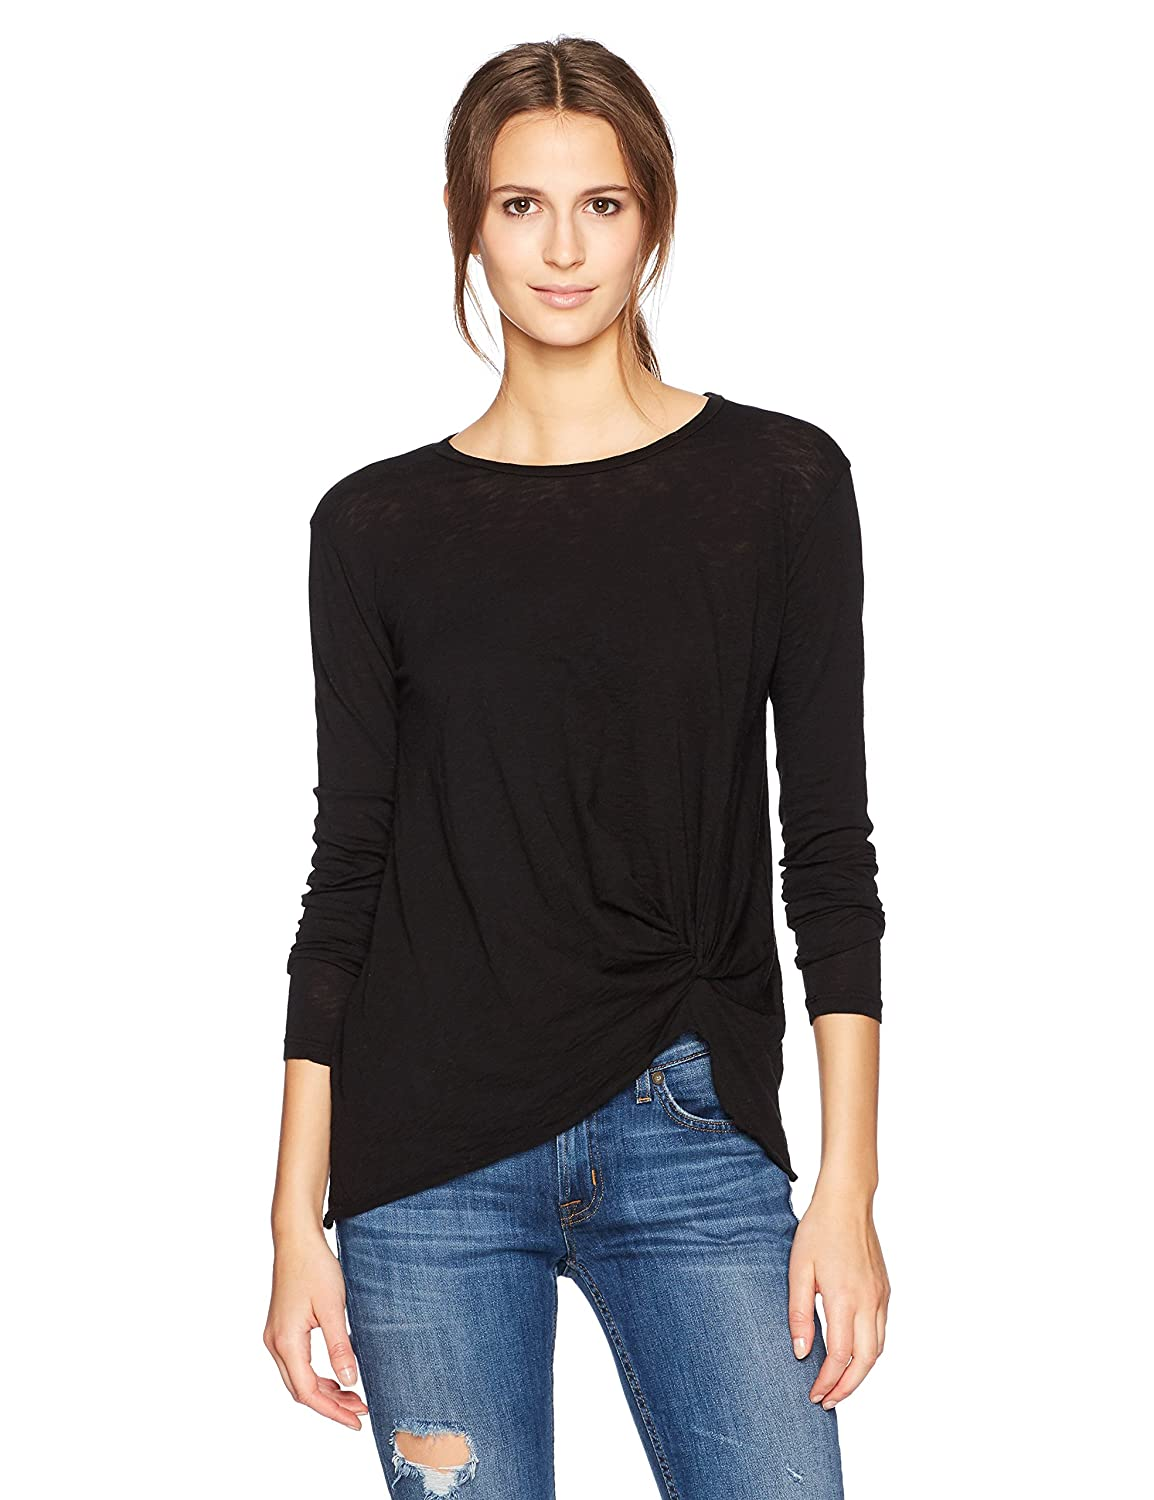 Black Stateside Womens Standard Supima Slub Long Sleeve Twist Tee